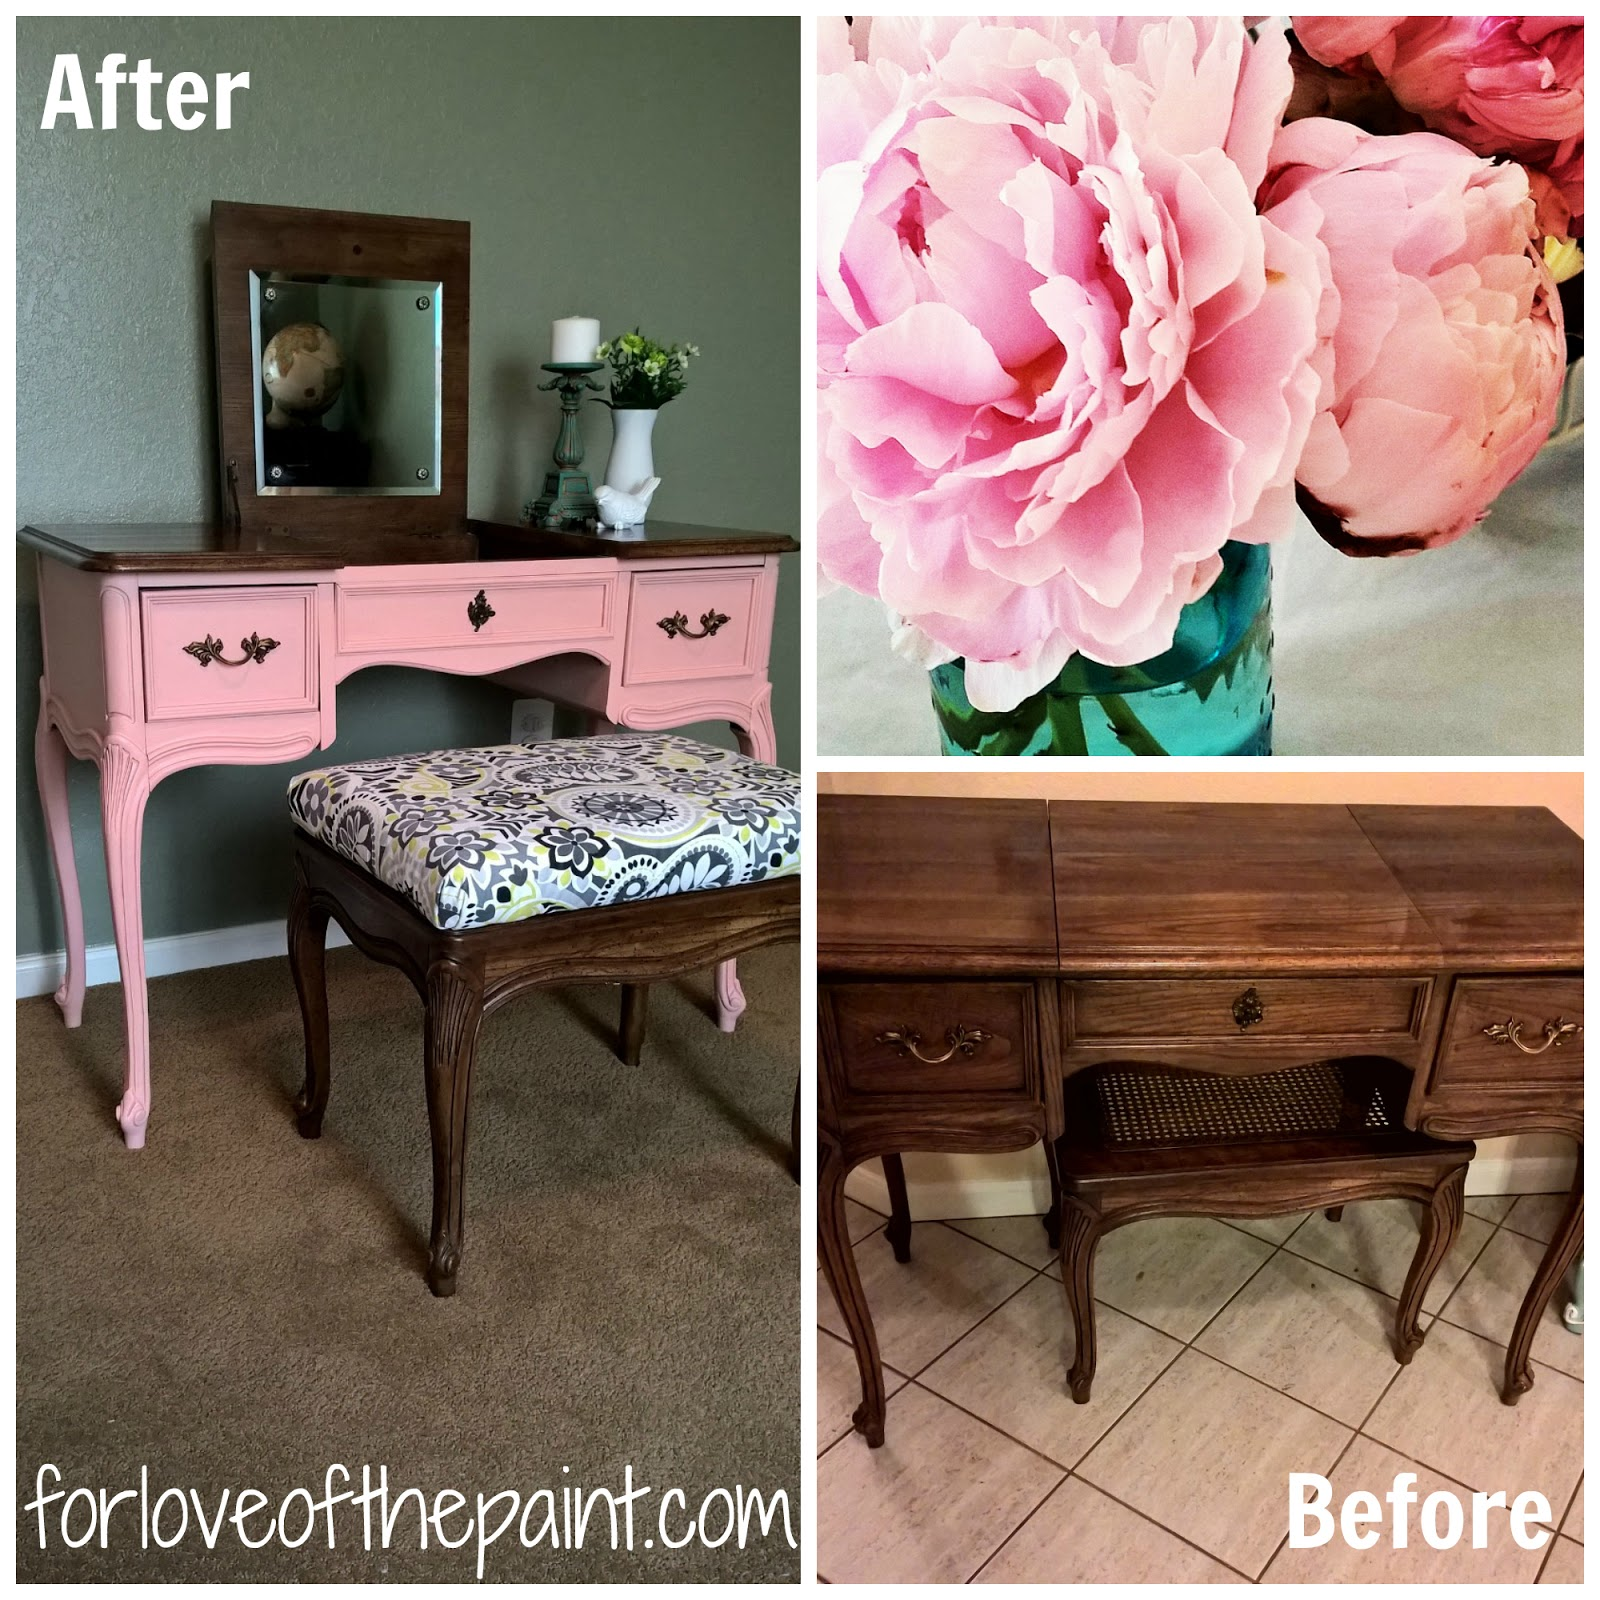 For love of the paint before and after vintage french provincial for love of the paint before and after vintage french provincial vanity makeover gumiabroncs Gallery